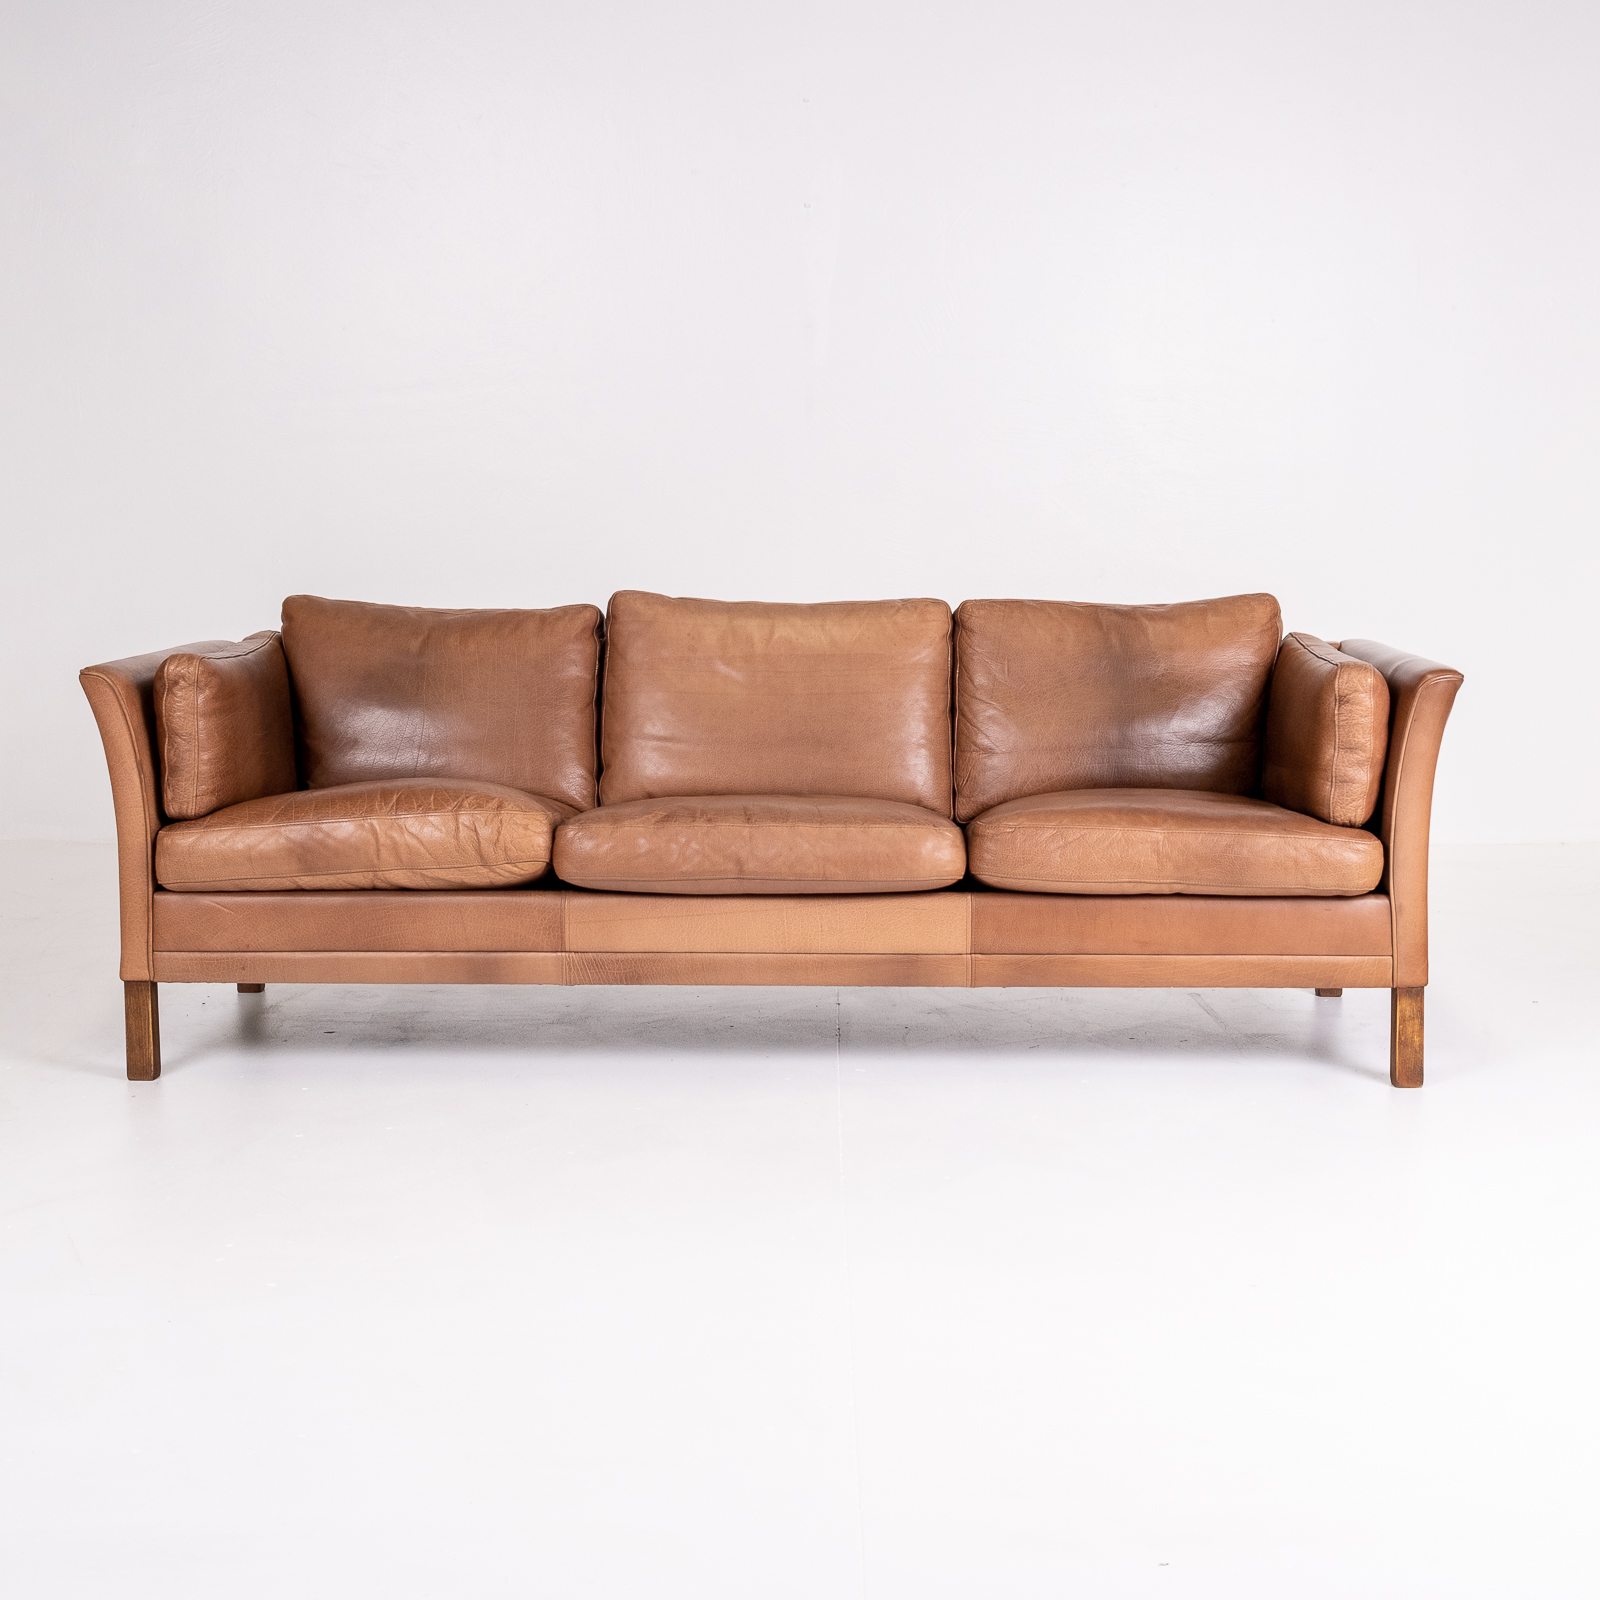 3 Seat Sofa In Brown Leather, 1960s, Denmark01